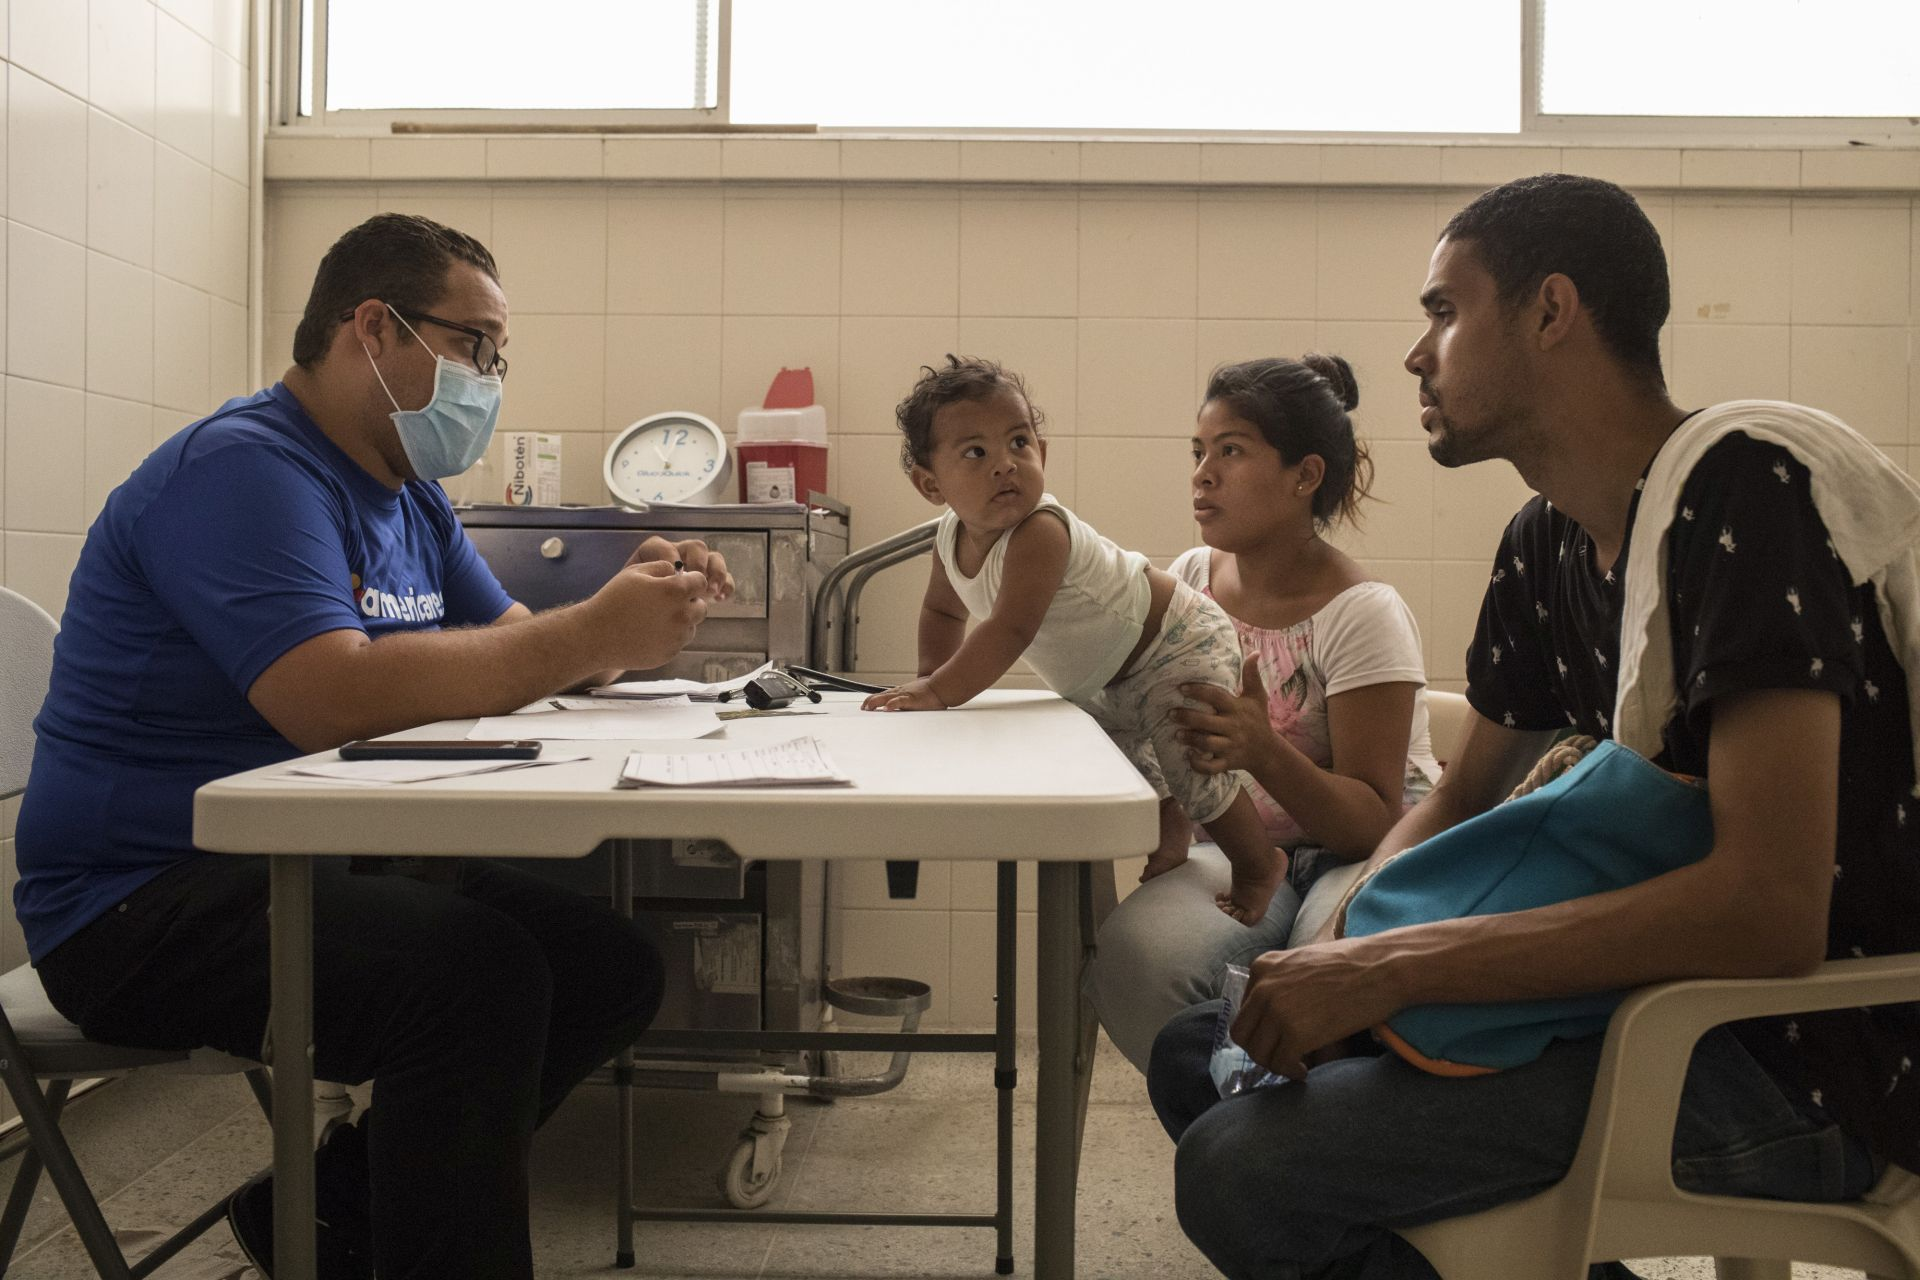 Venezuelan patients at Americares clinic in Colombia